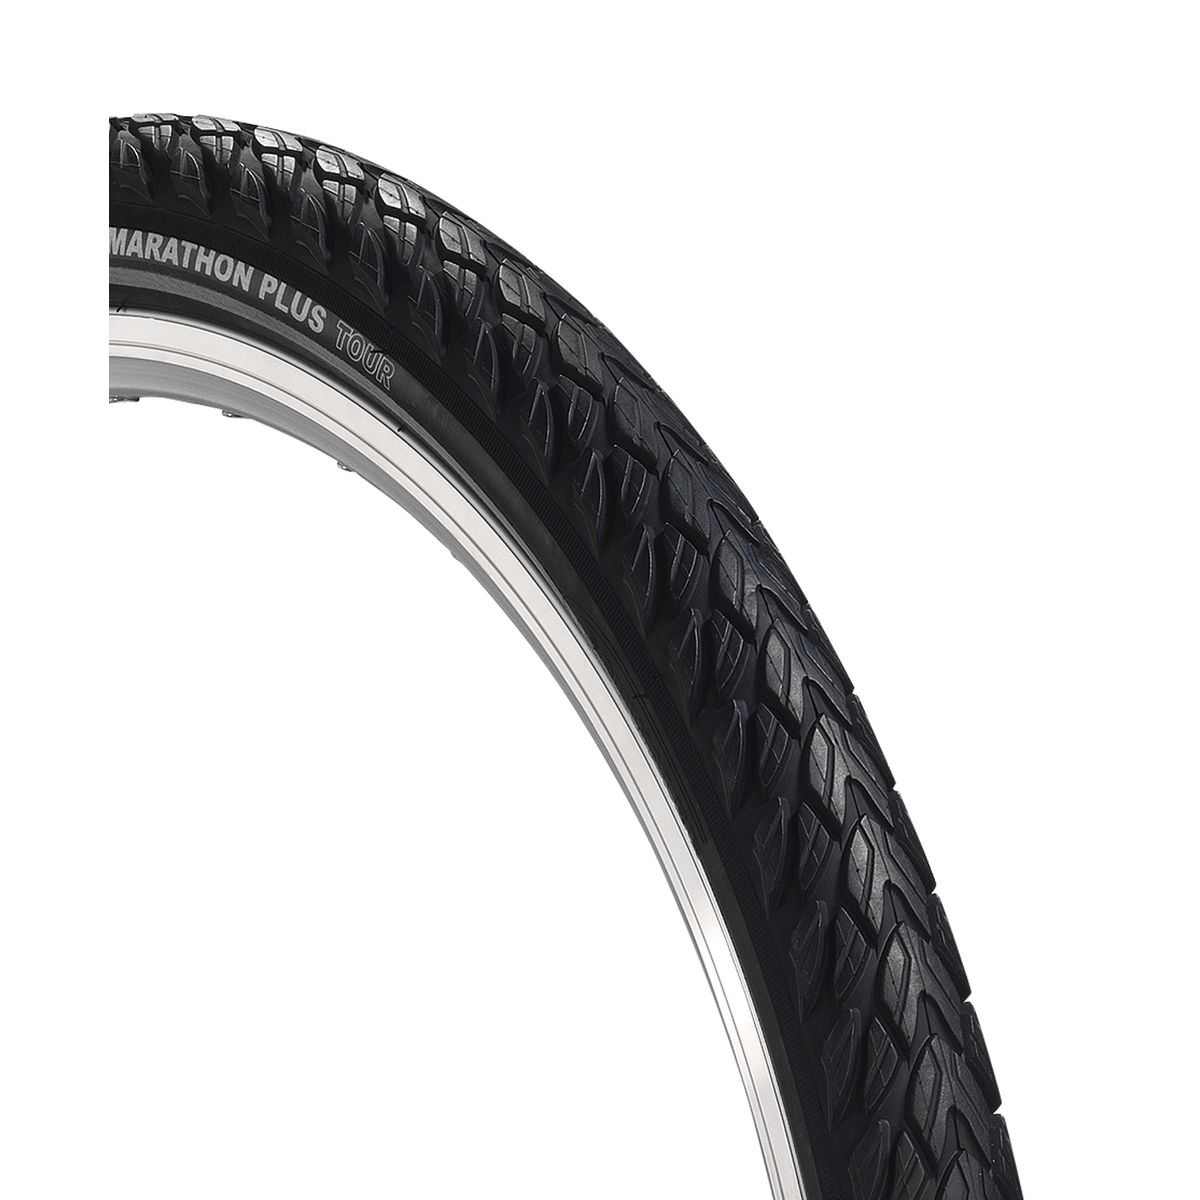 MARATHON PLUS TOUR clincher tyre